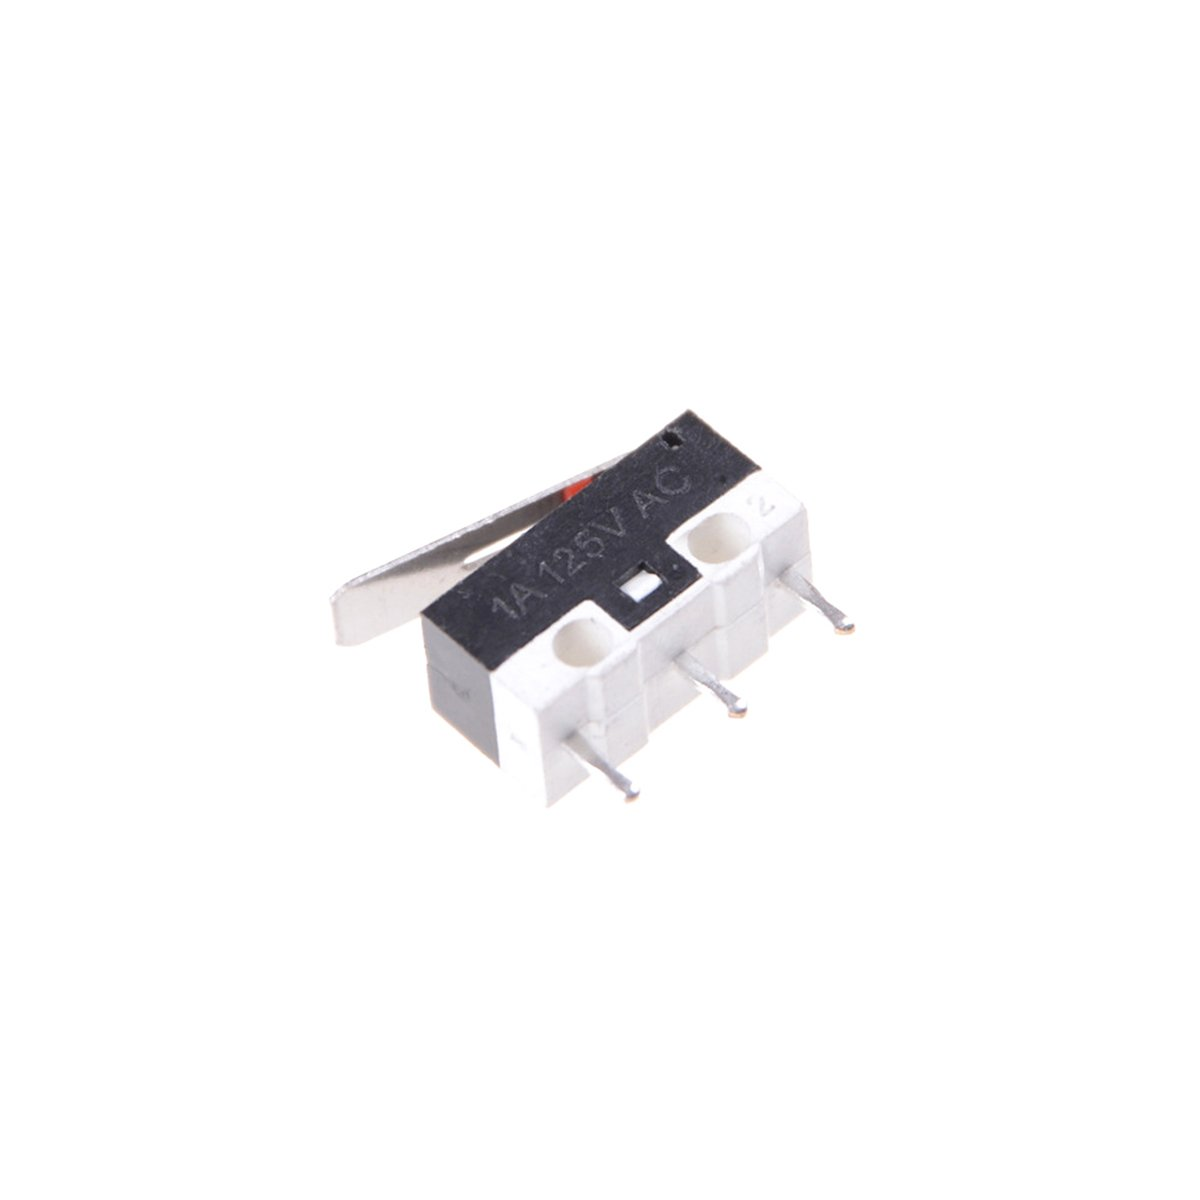 Ukcoco Pack of 5/Micro Limit Switch Waterproof Moment Anen Pressure Switch 3/Pins Long Hinge Lever Micro Switch